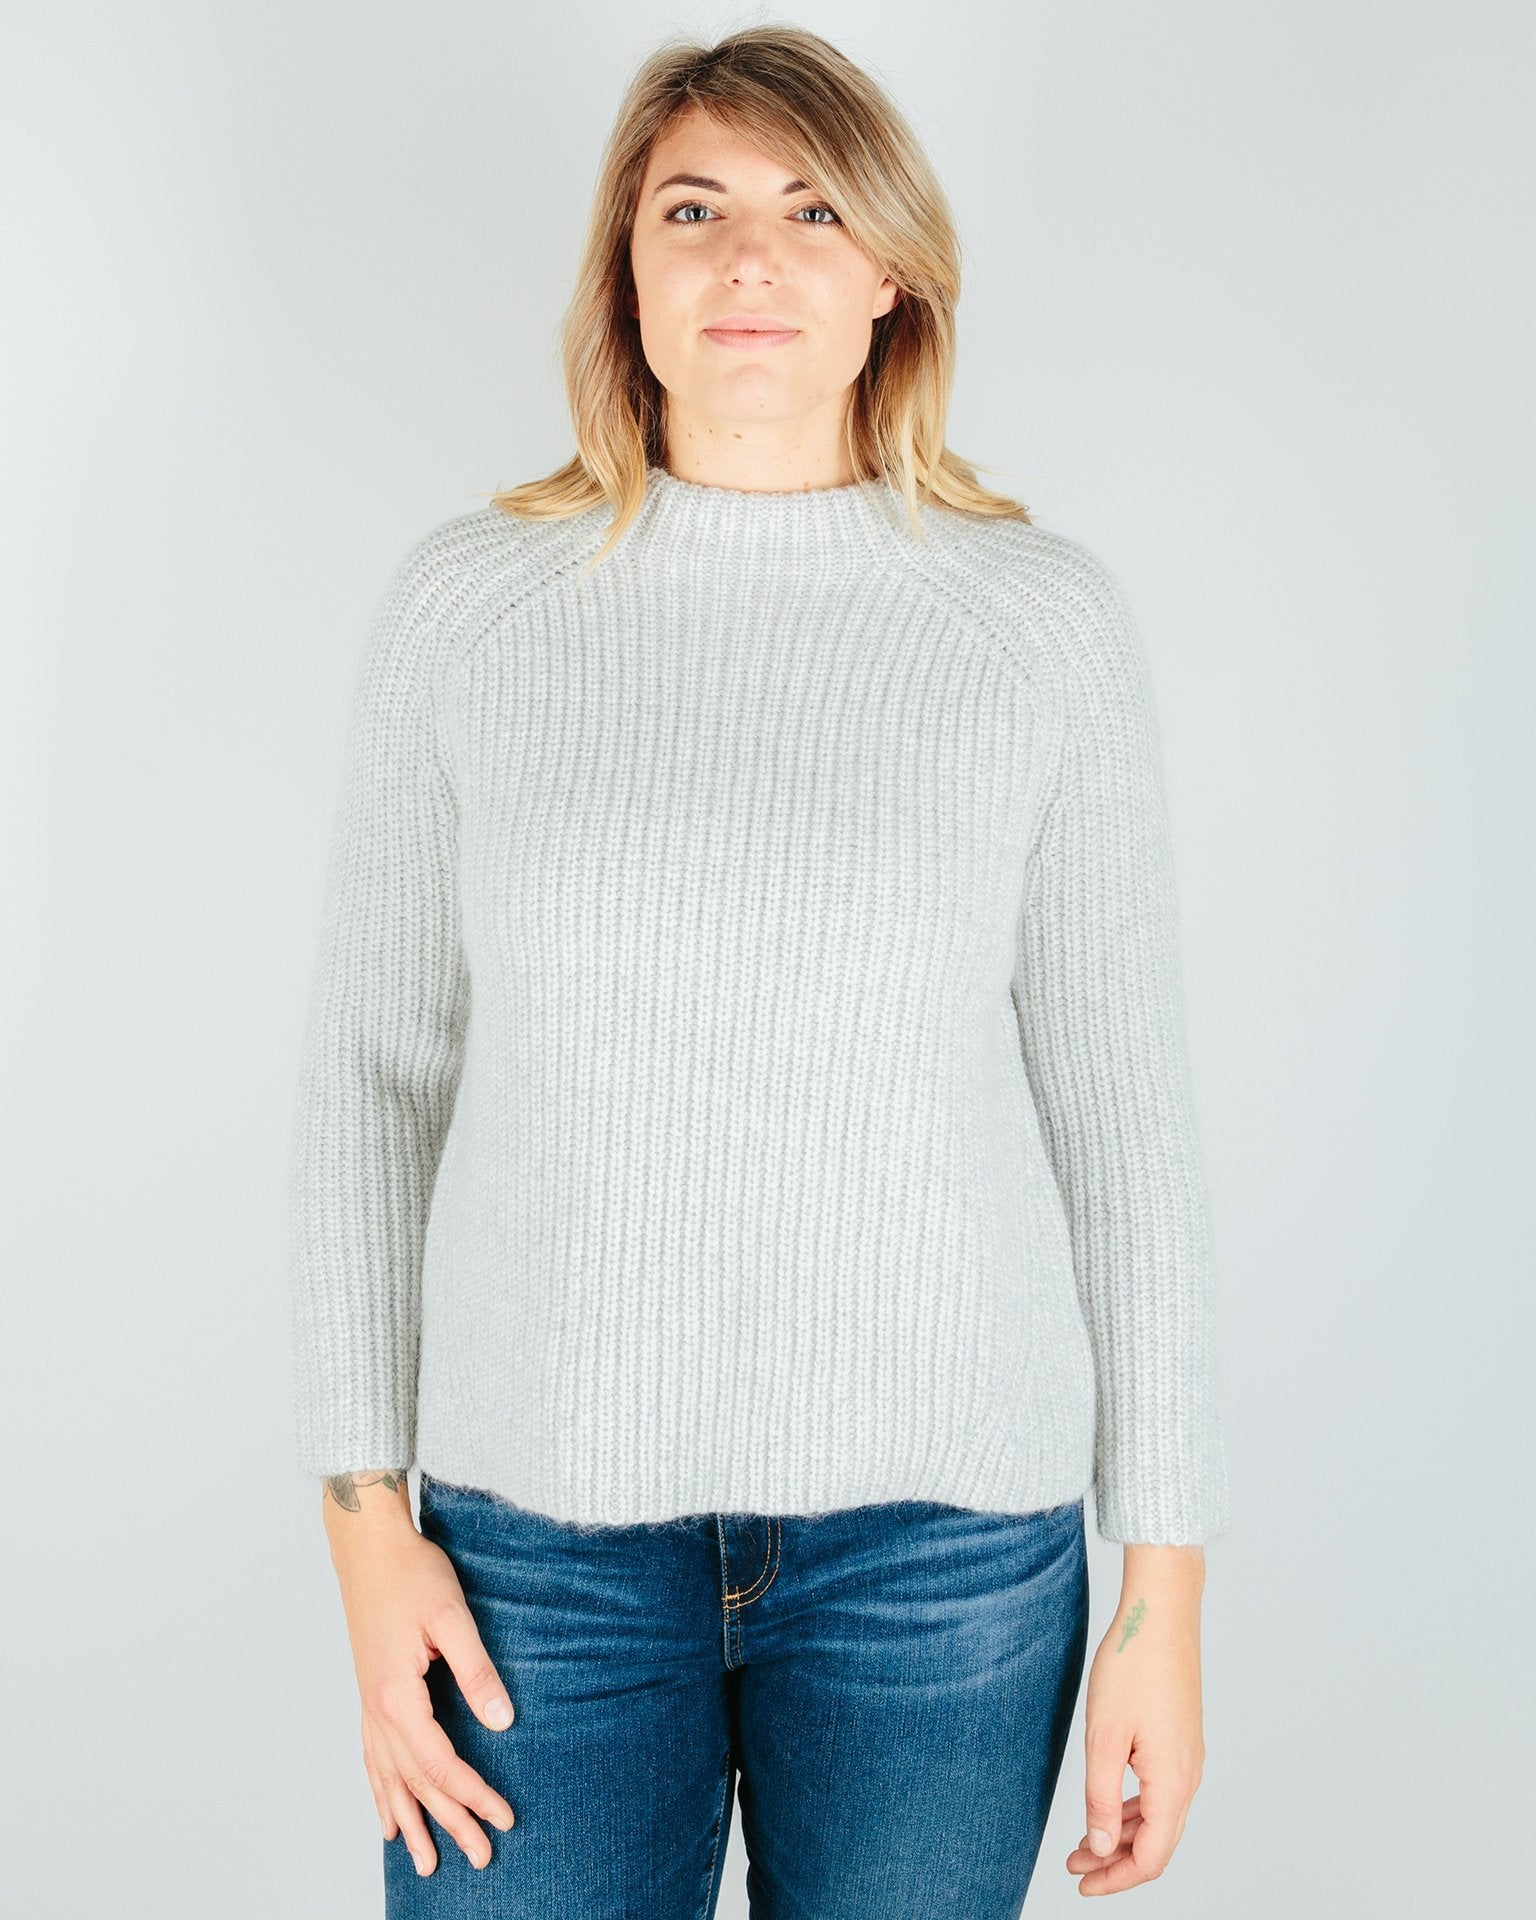 Demylee Clothing Light Heather Grey / XS Daphne Crewneck Sweater in Light Heather Grey